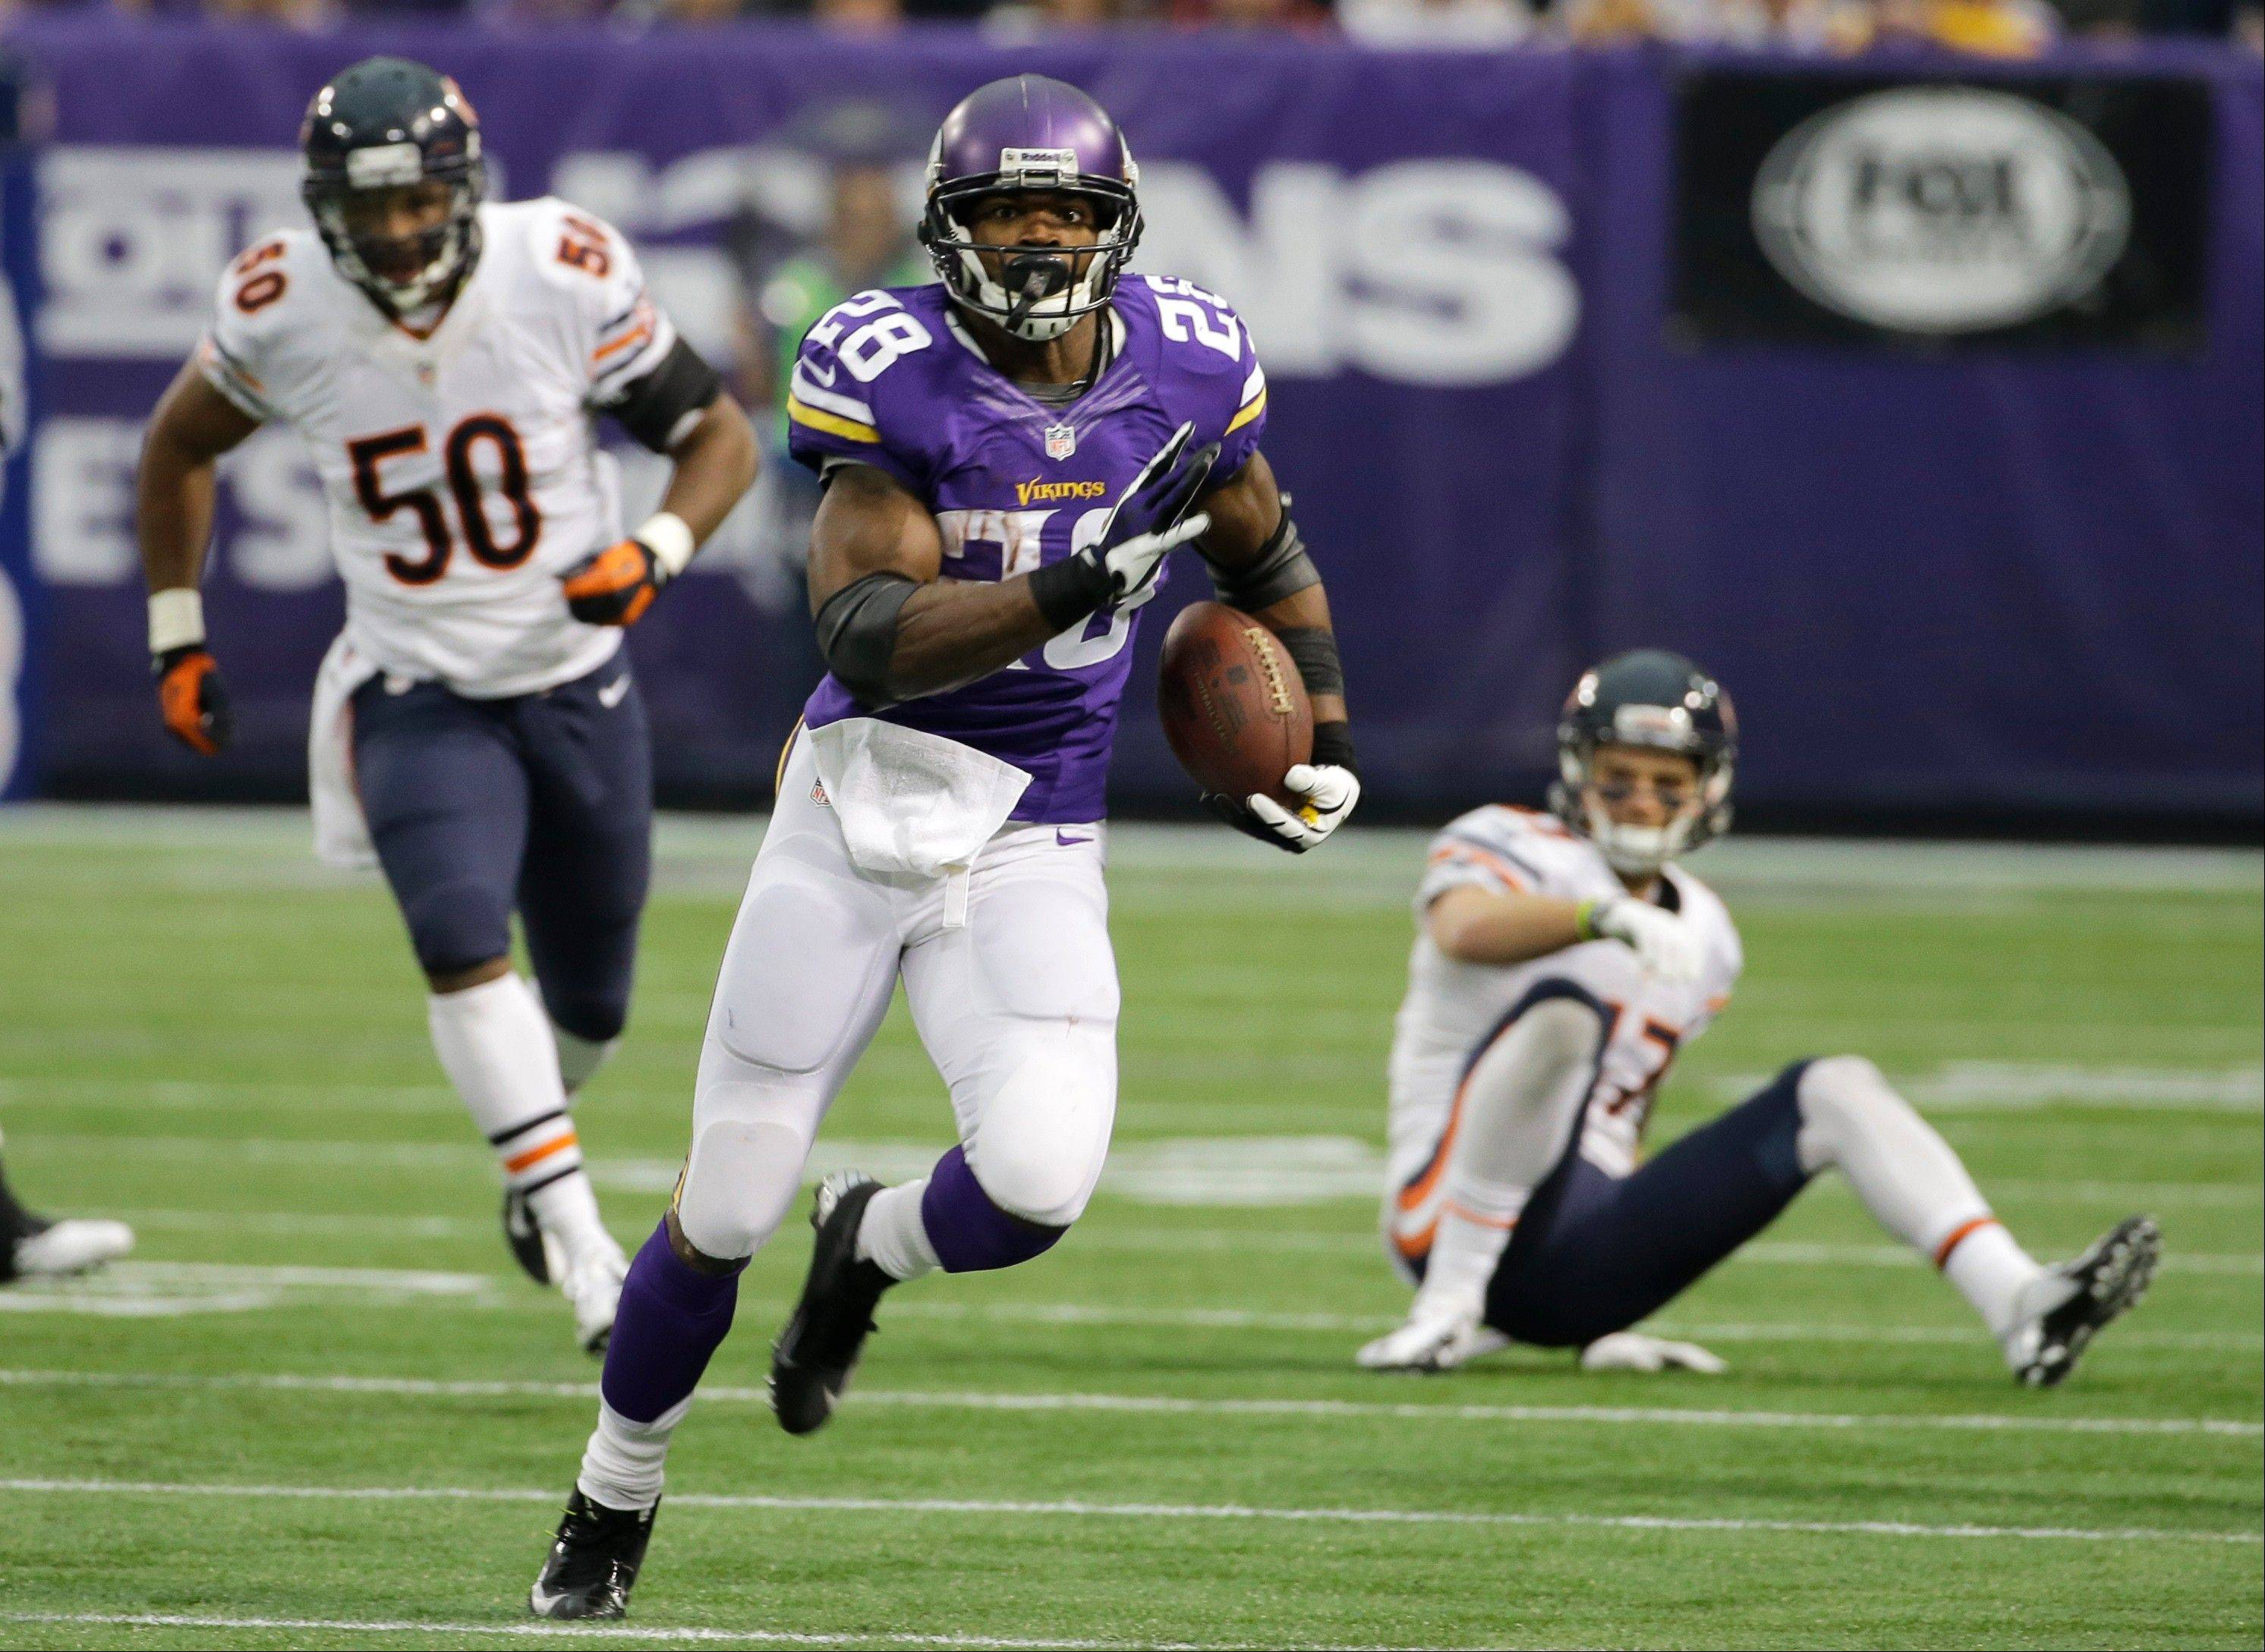 Minnesota Vikings running back Adrian Peterson, center, runs from Bears defenders James Anderson, left, and Chris Conte, right, during the first half of an NFL football game on Sunday, Dec. 1, 2013, in Minneapolis.